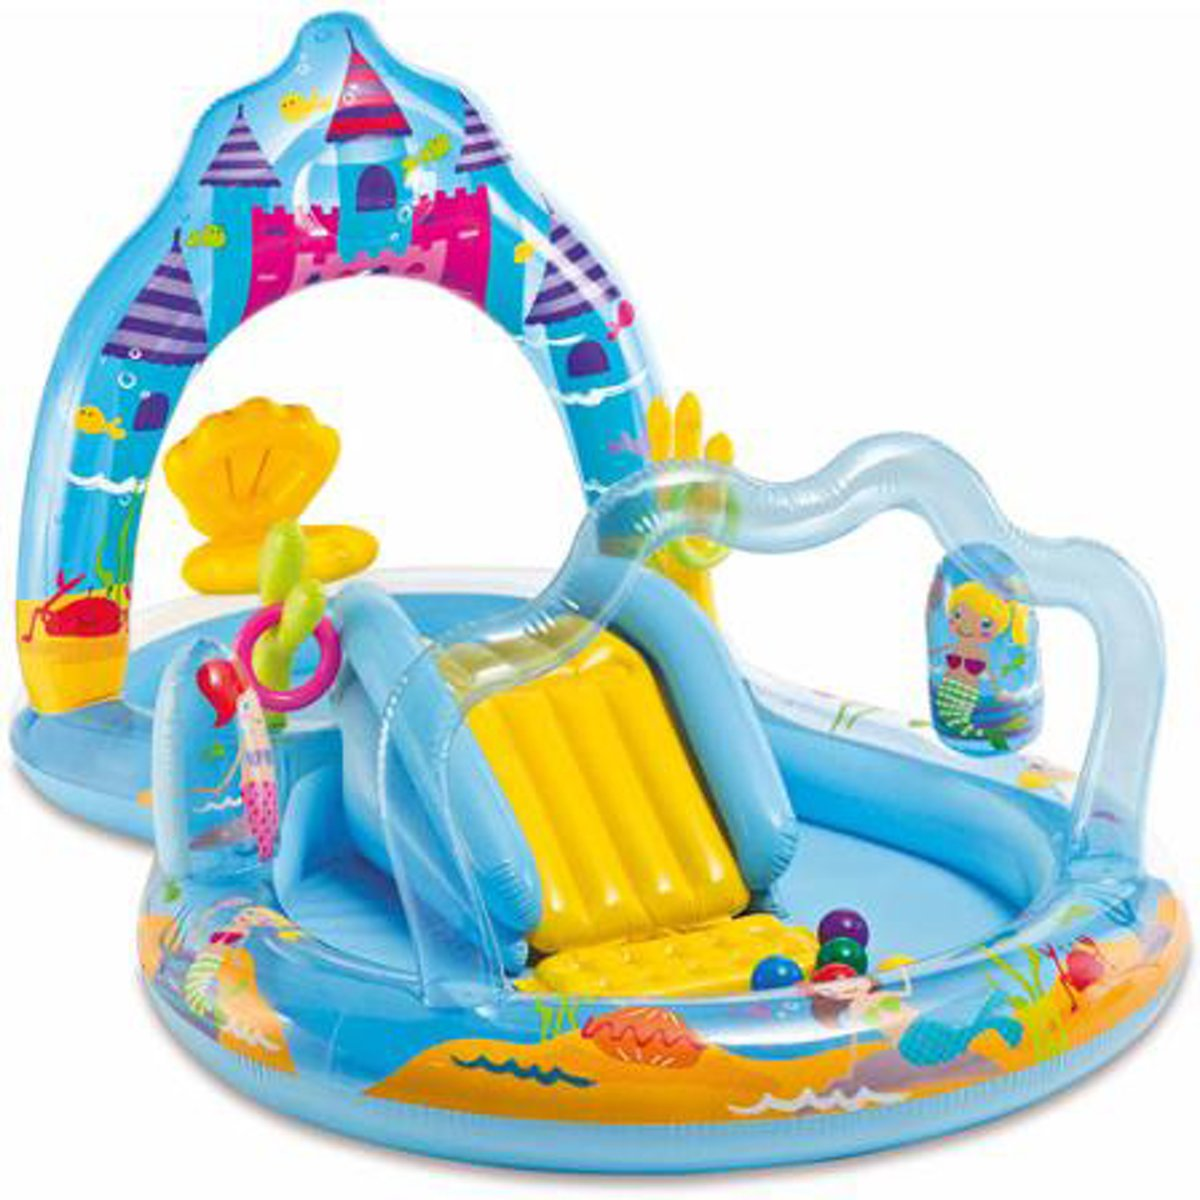 Intex Mermaid Kingdom Play Center